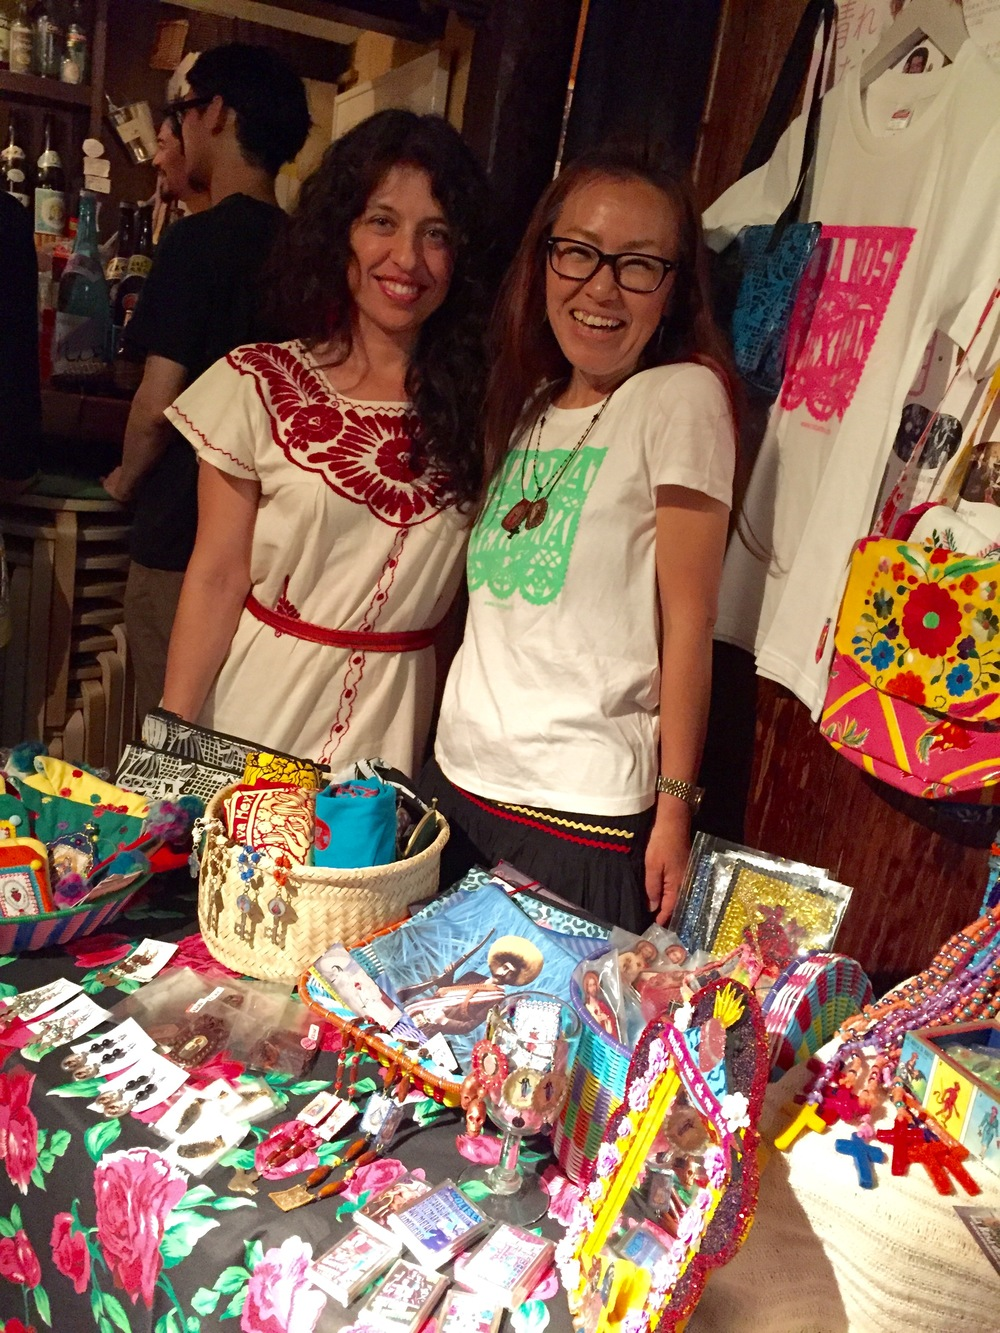 Eddika and Yuka with her items from La Rosa Mexicana